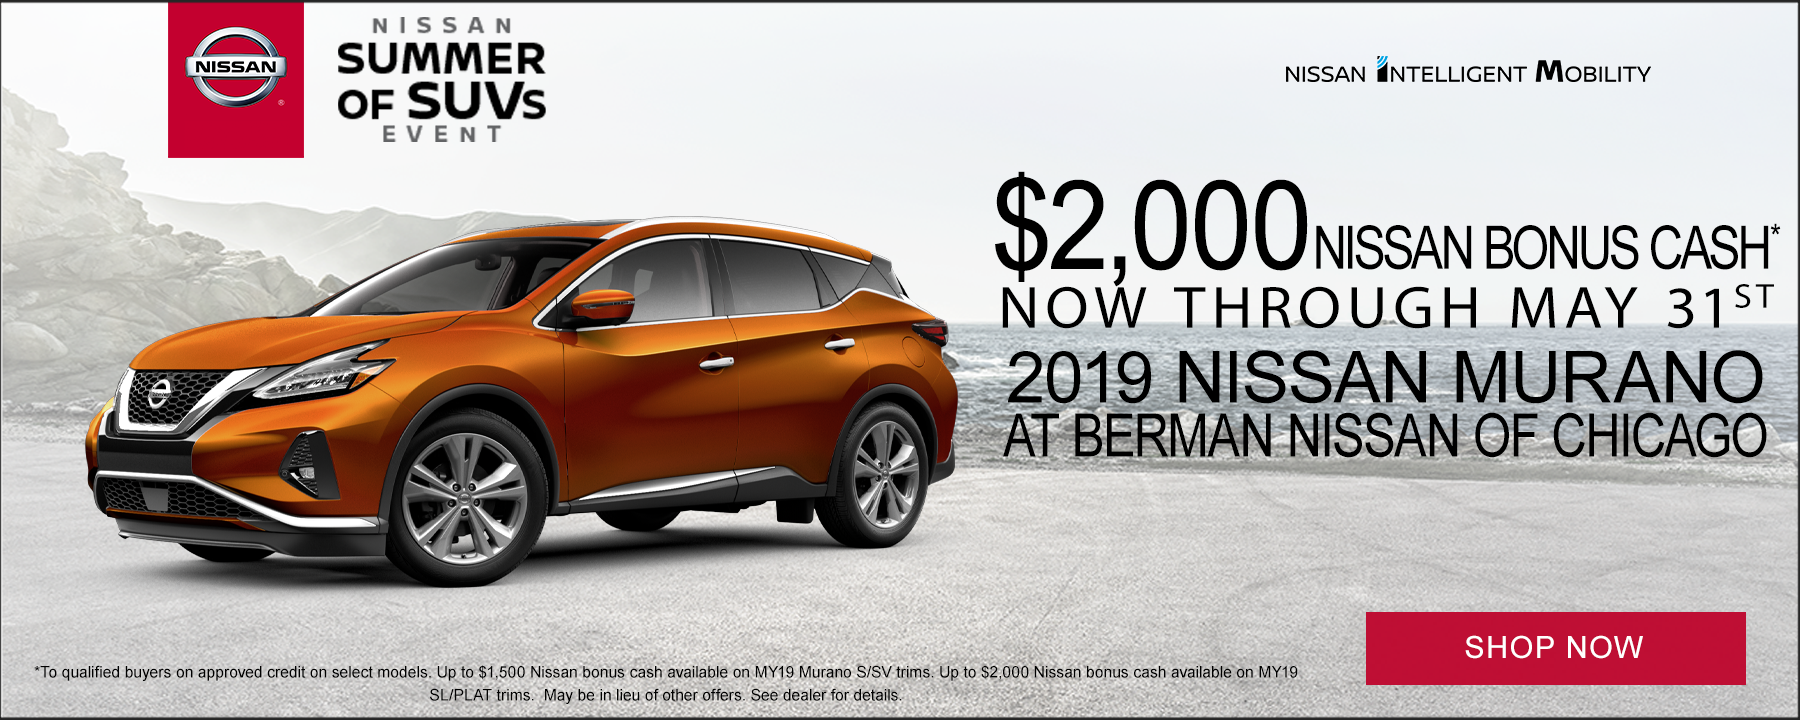 Up to $2,000 Bonus Cash available on 2019 Nissan Murano at Berman Nissan of Chicago!